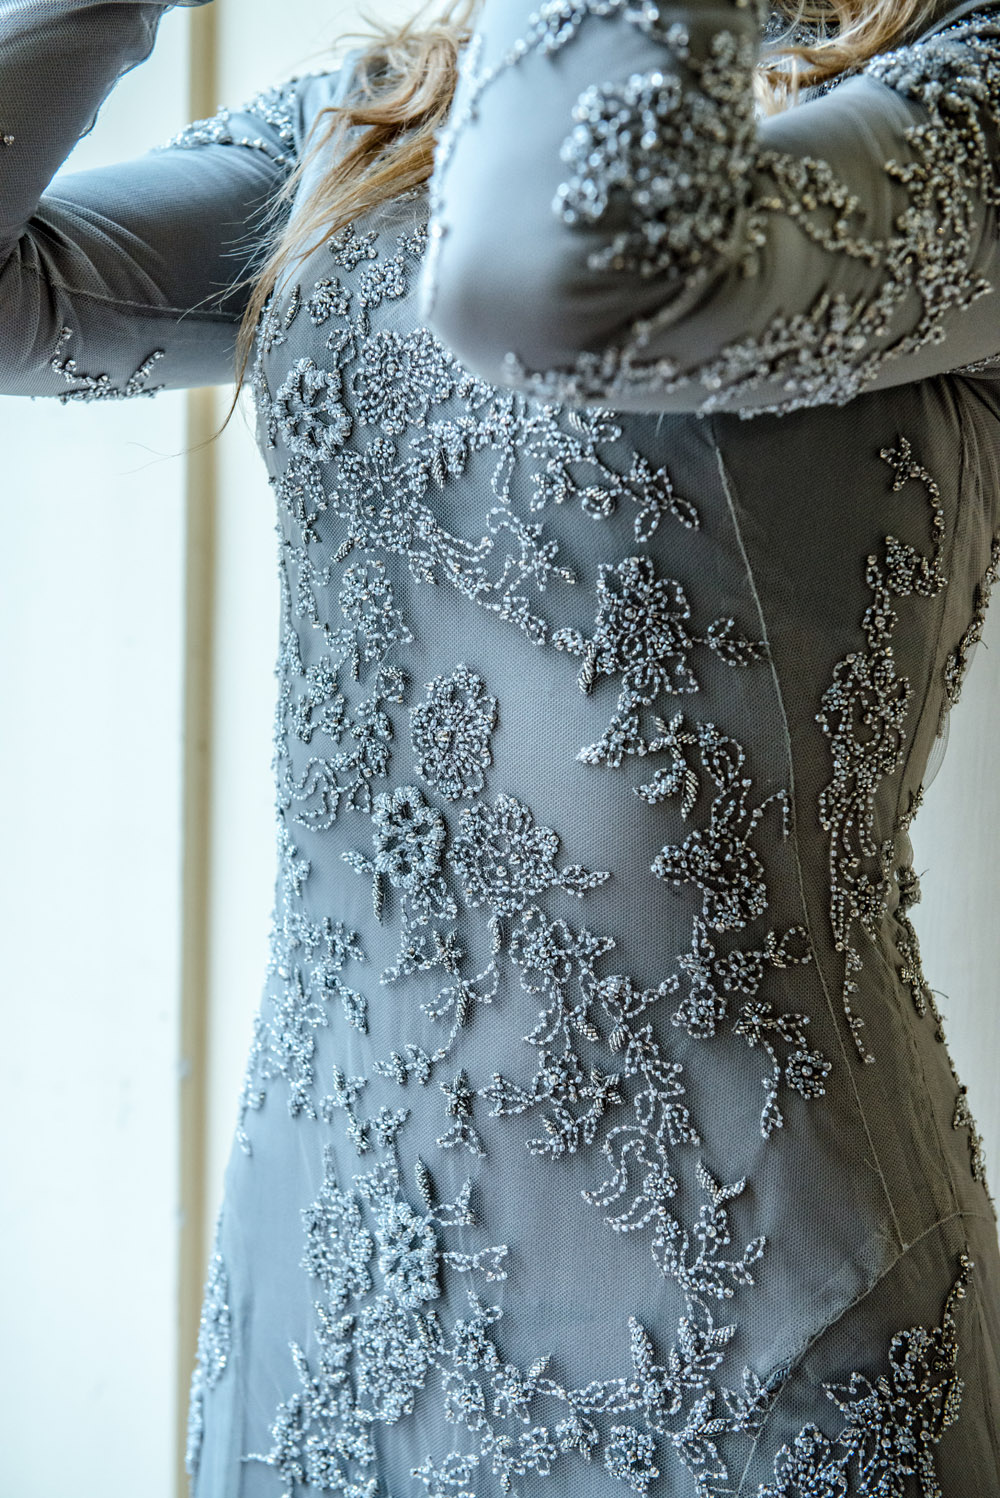 details of new year's eve dress